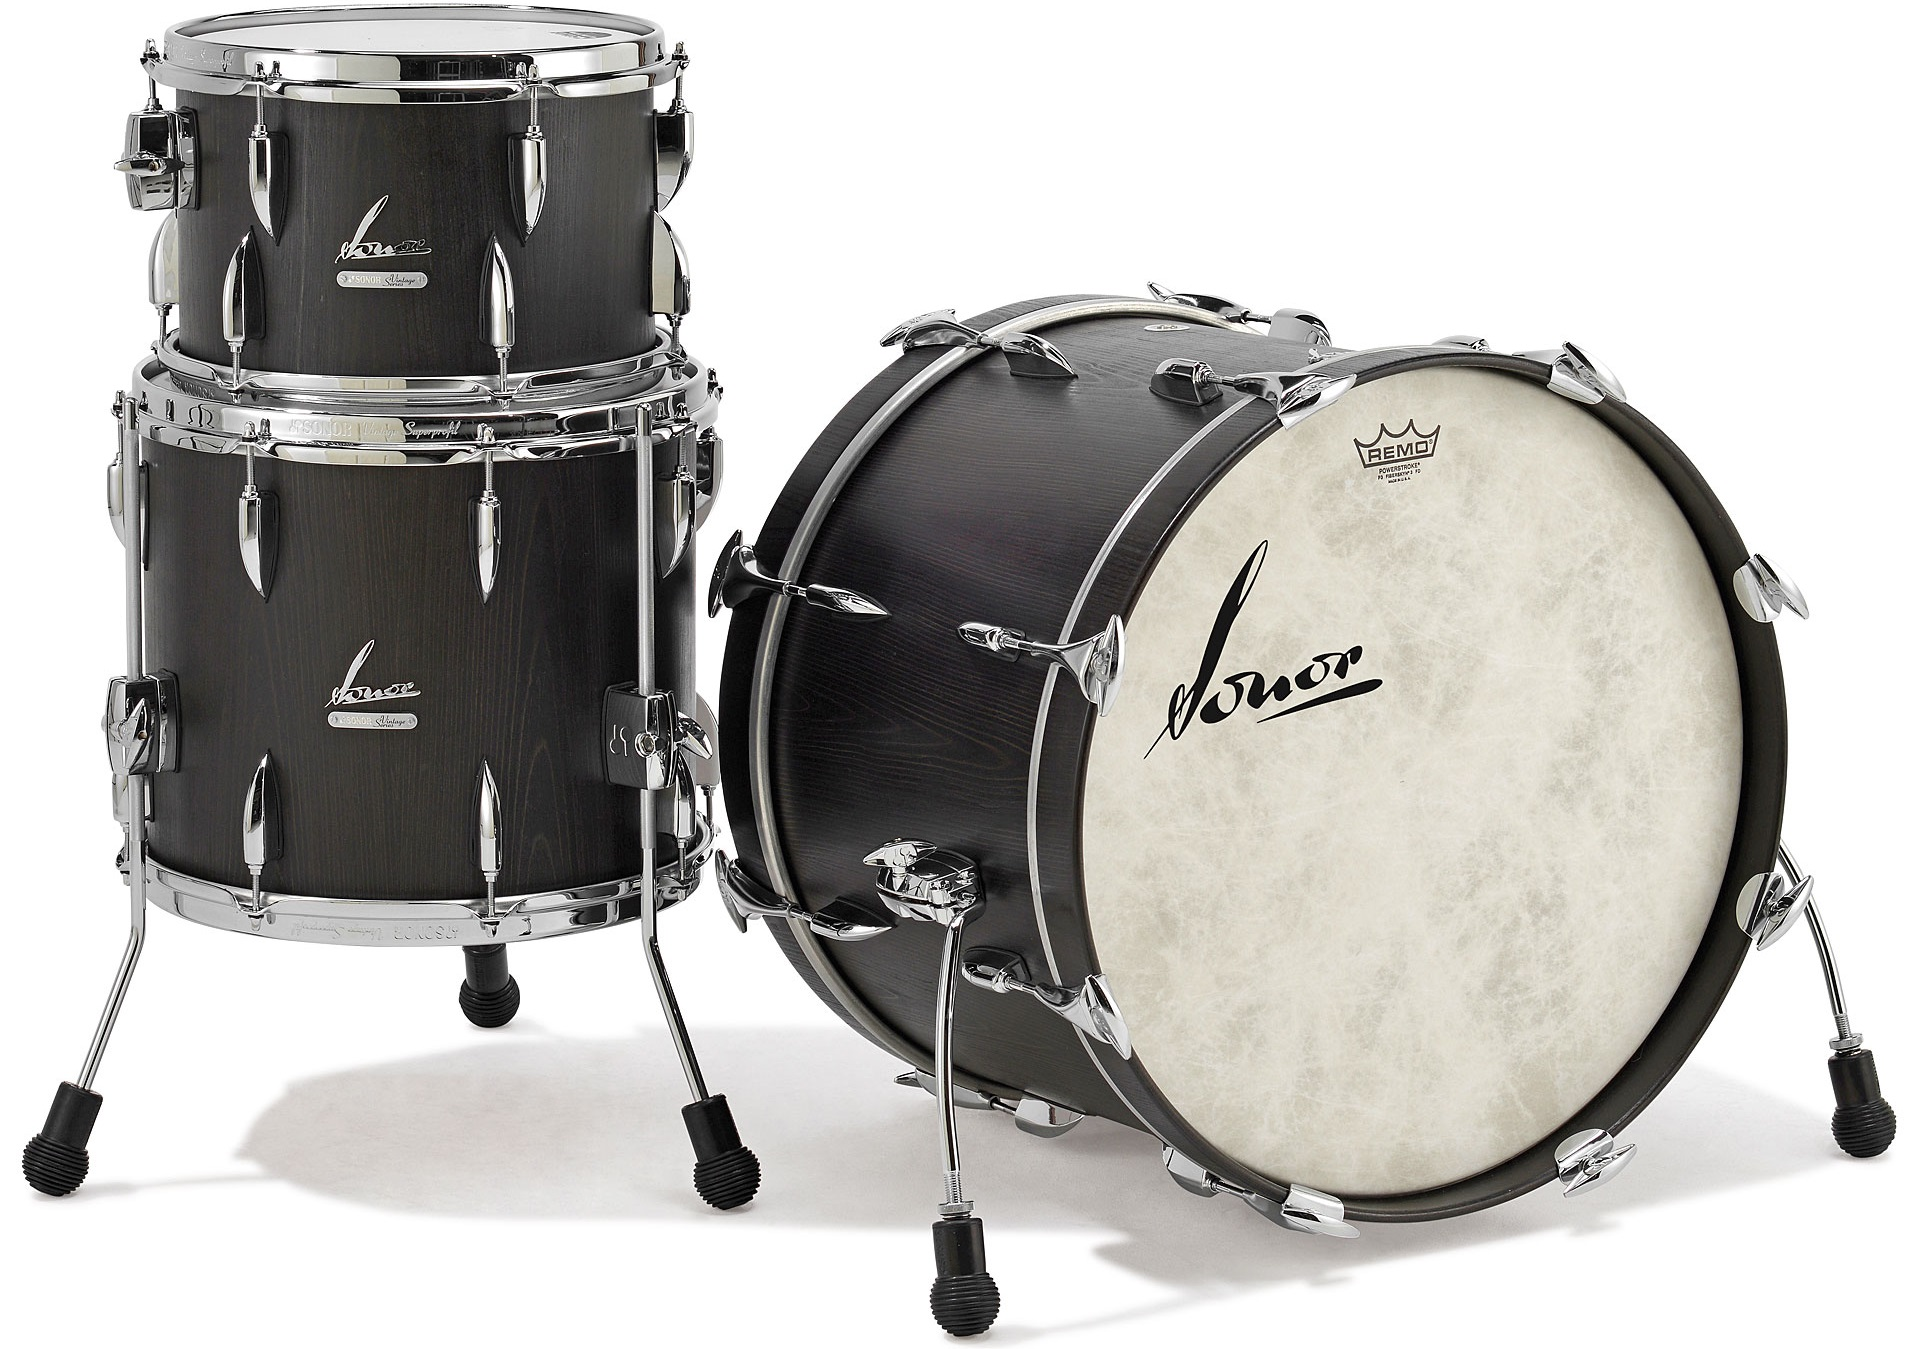 Sonor Vintage series set 2 Vintage onyx